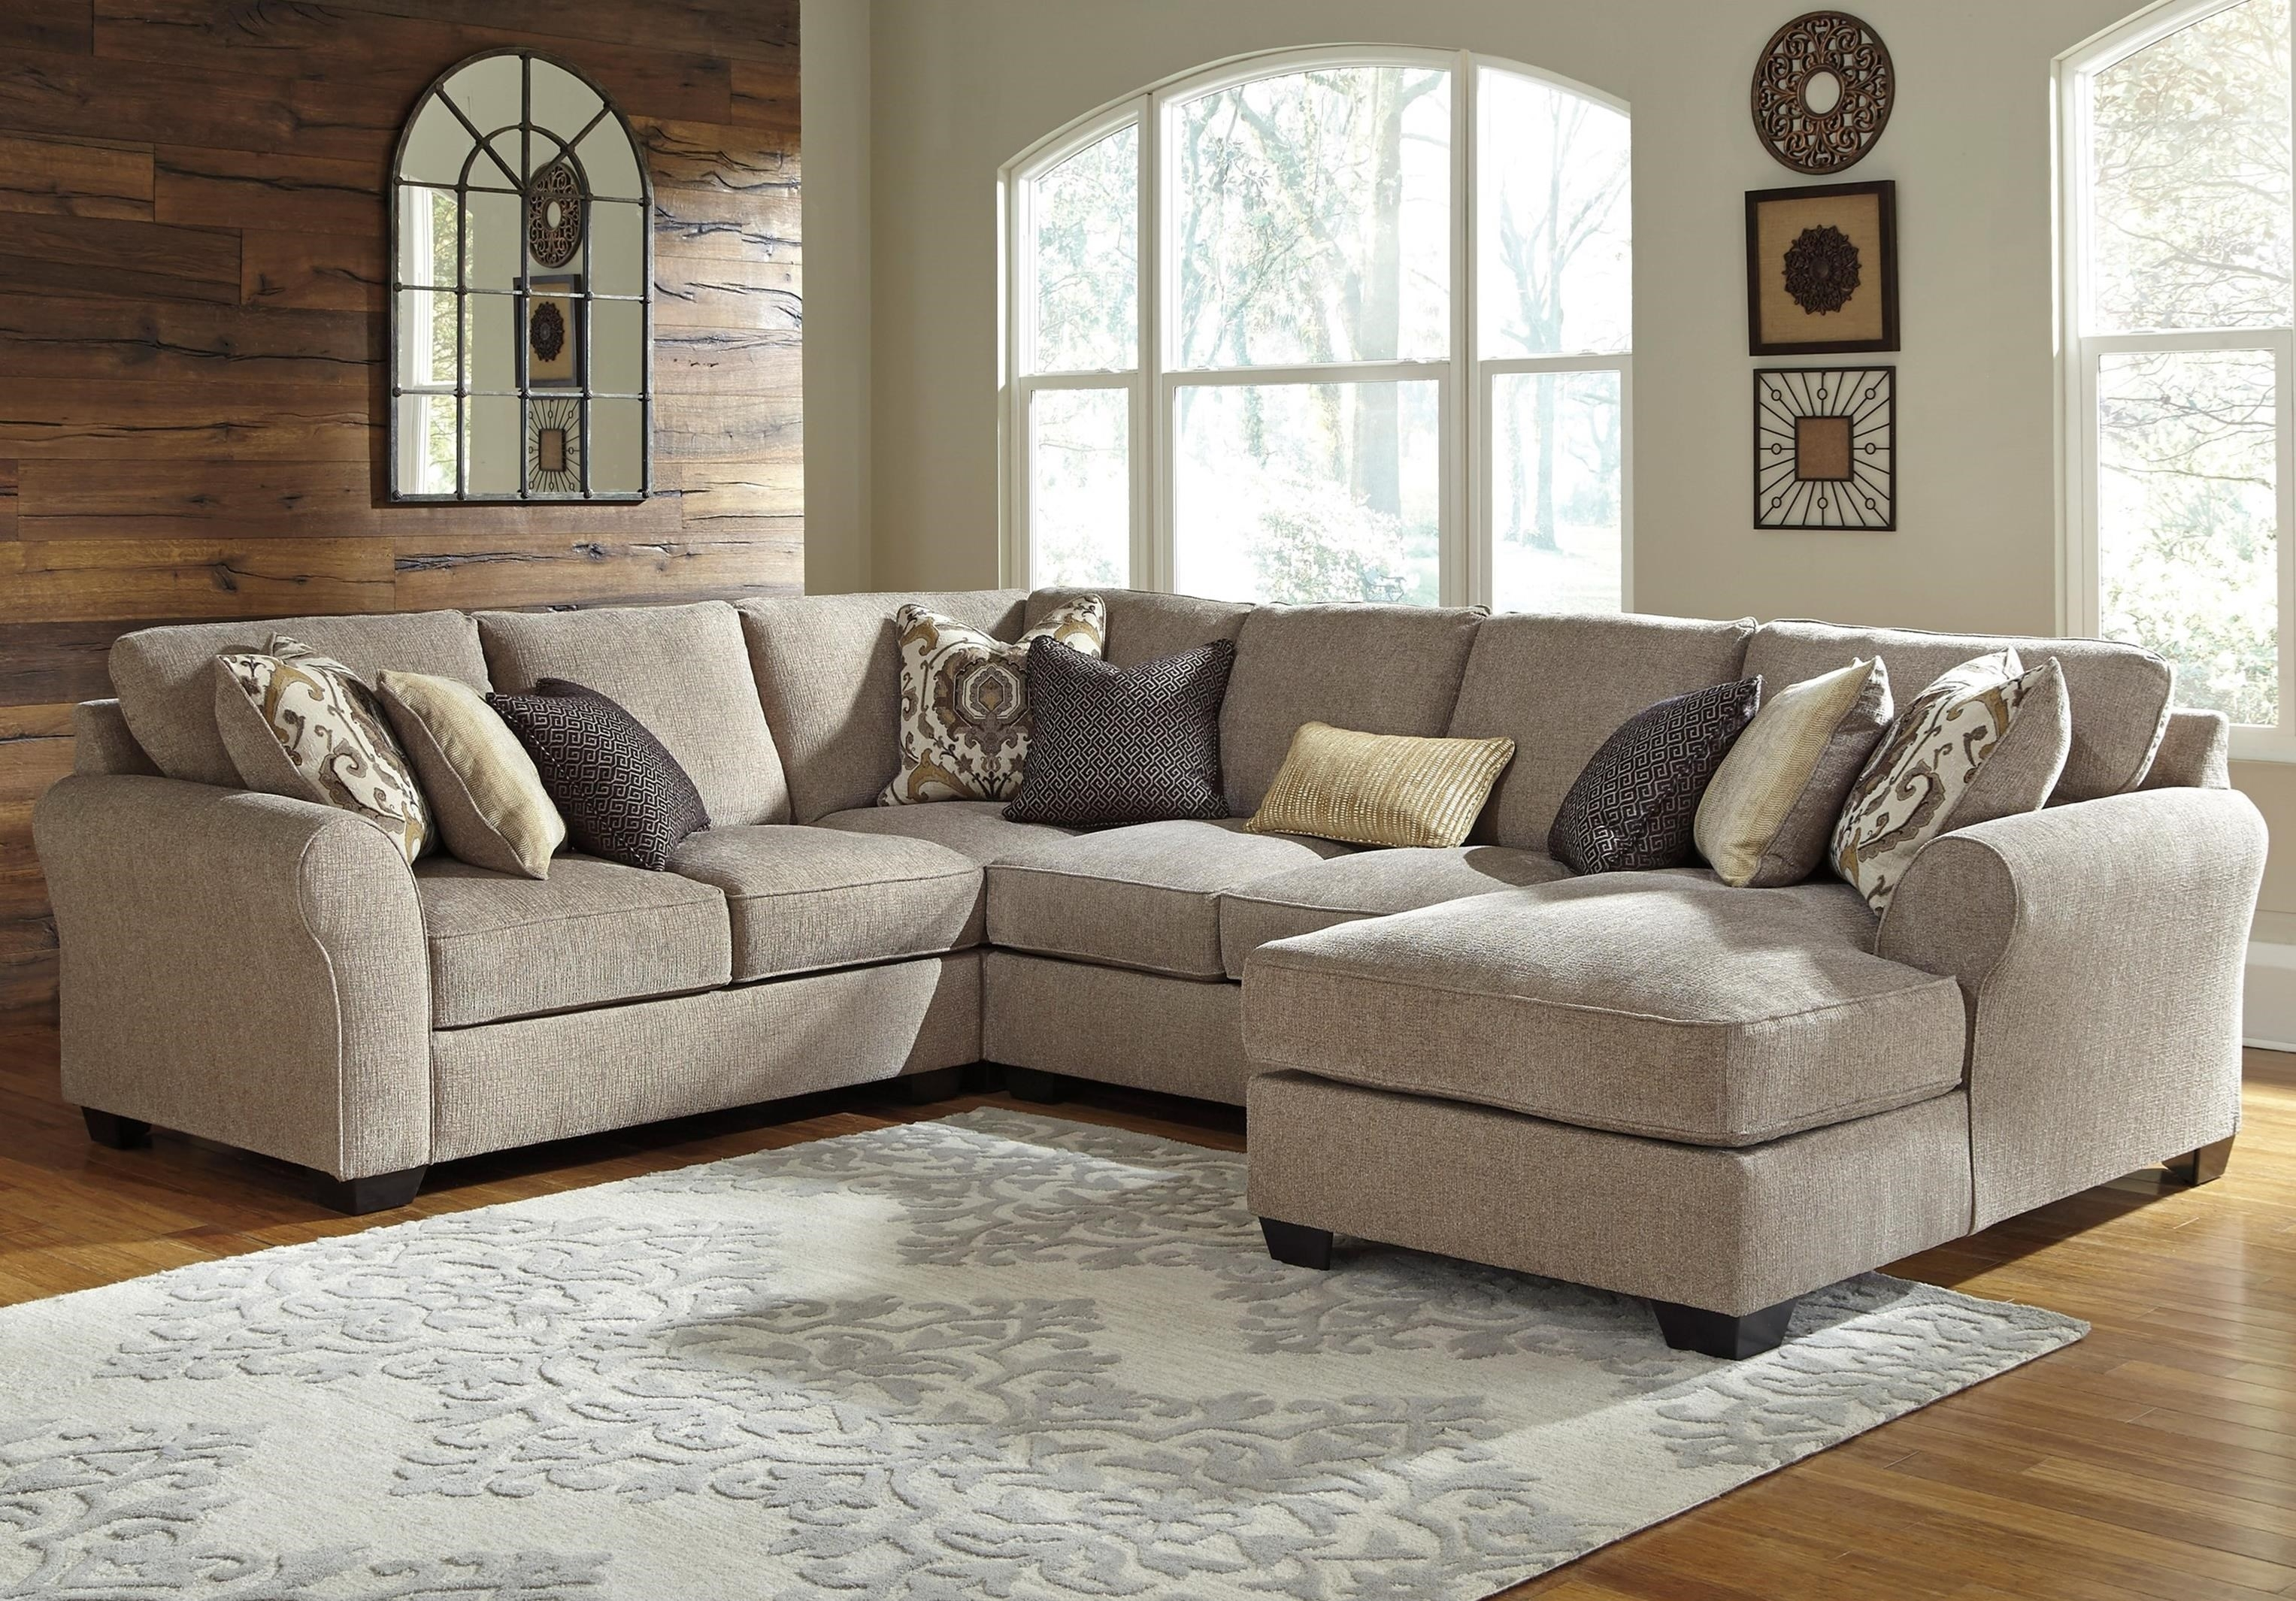 Benchcraft Sectional Sofa - Interior Design 3D • within Aspen 2 Piece Sleeper Sectionals With Laf Chaise (Image 10 of 30)